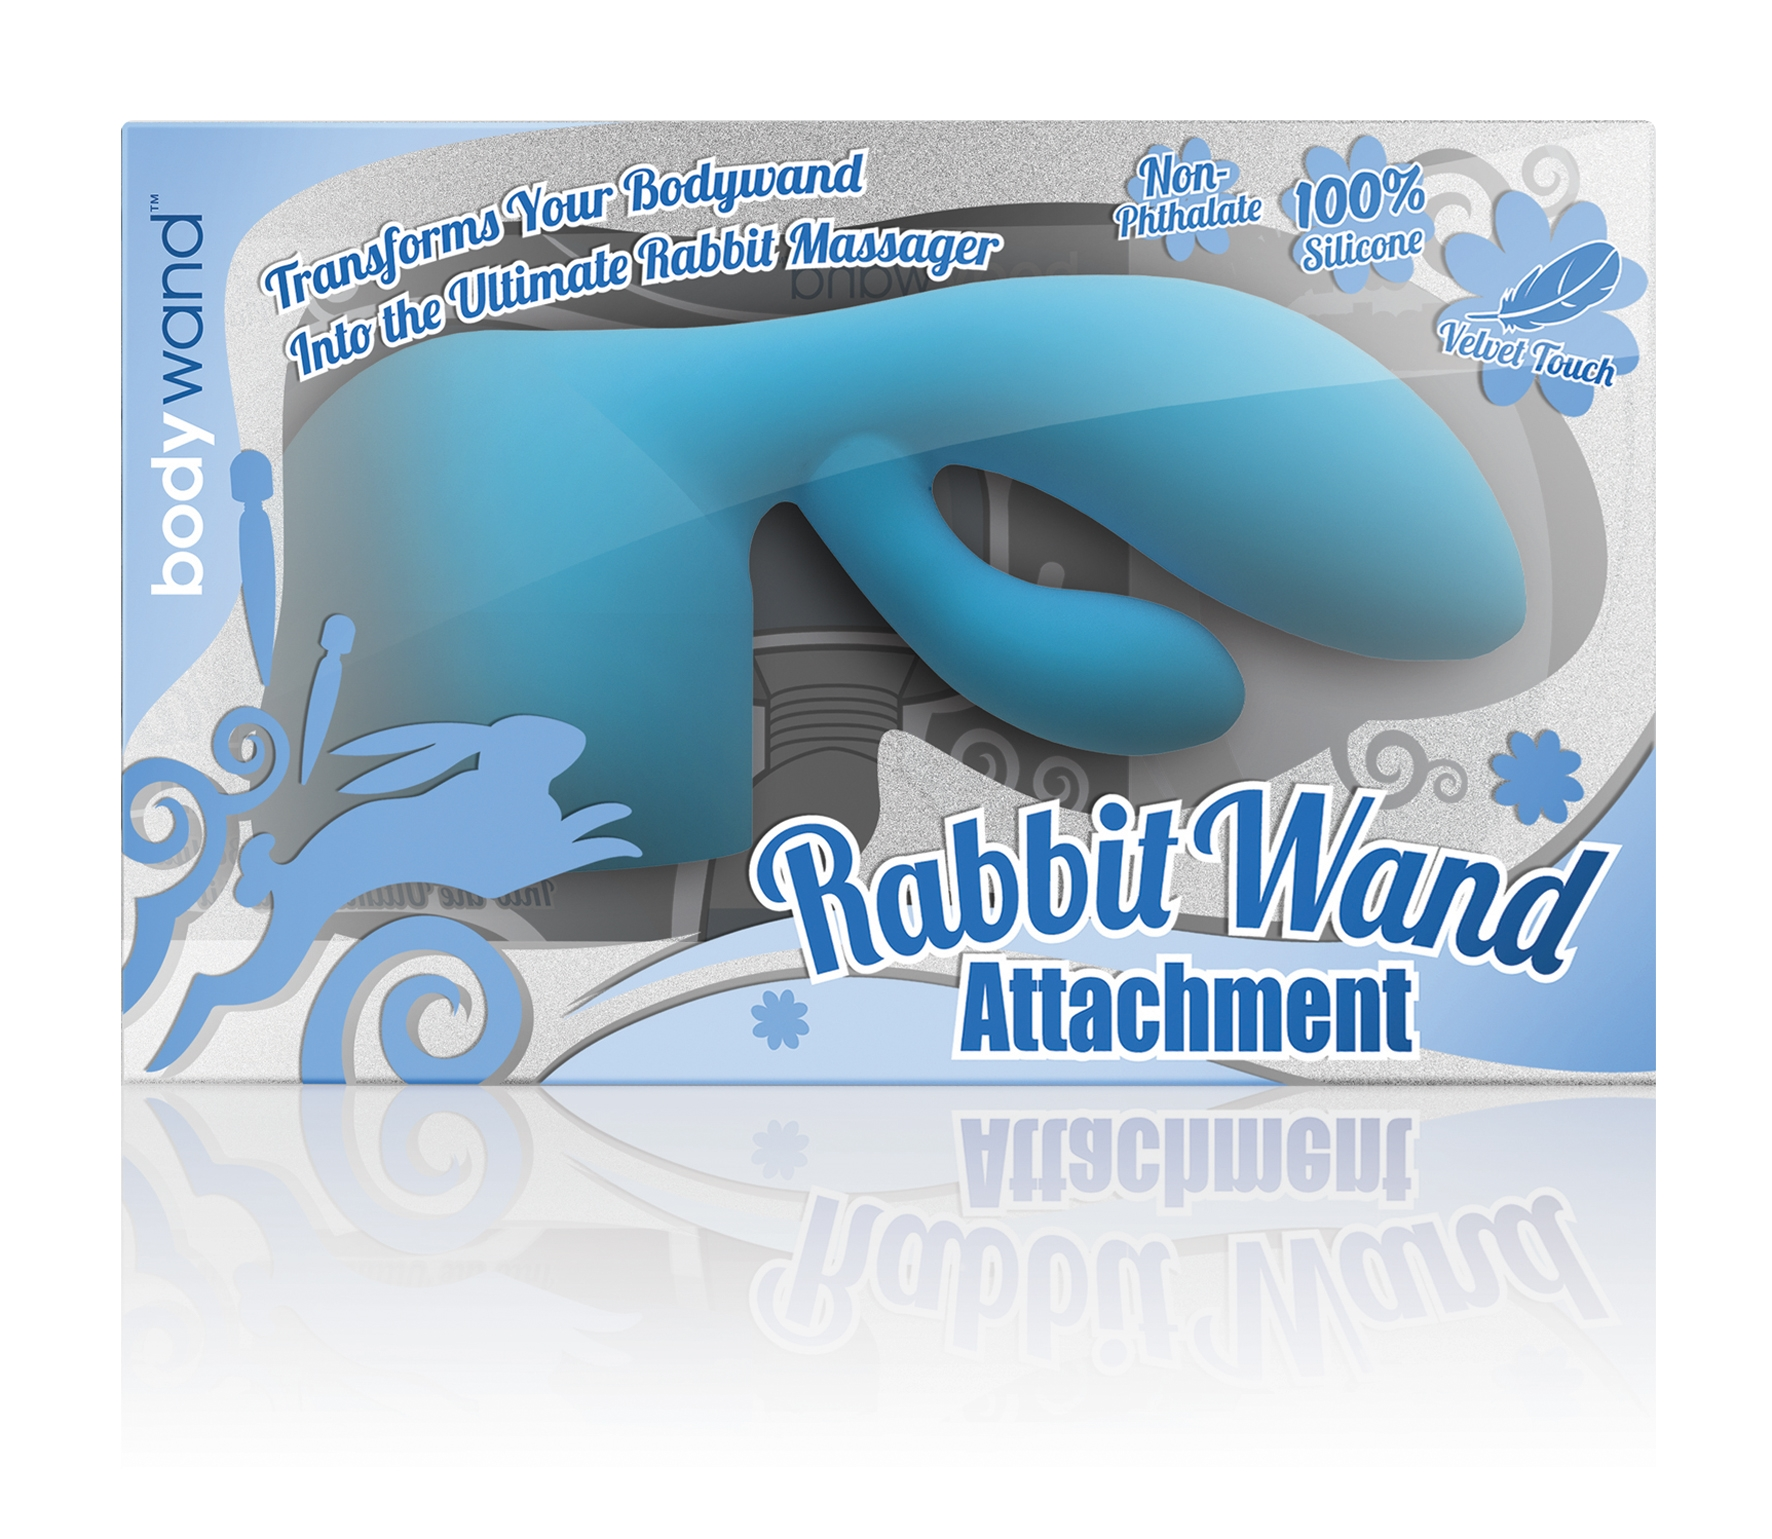 Body Wand: Rabbit Wand Attachment